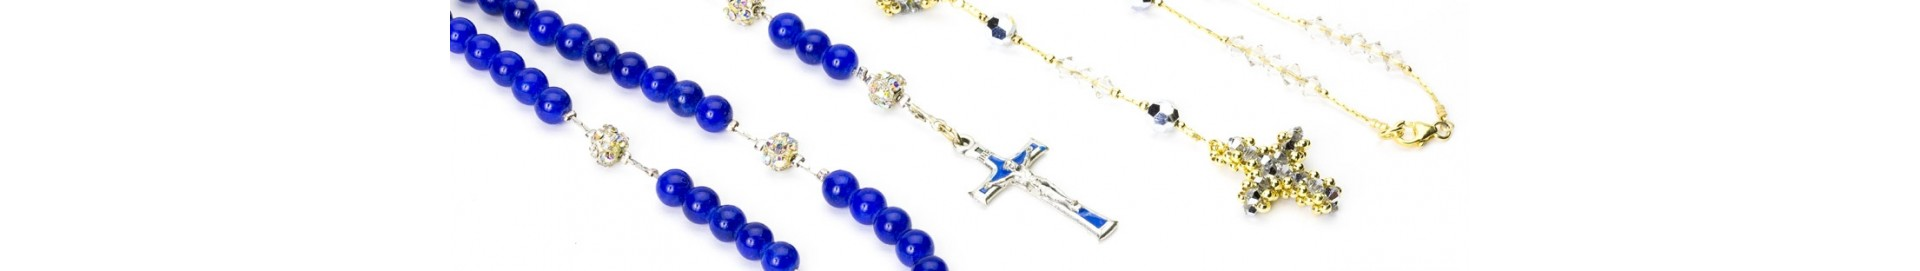 Miraculous Medal Necklace & Pendants – The Vatican Gift Shop